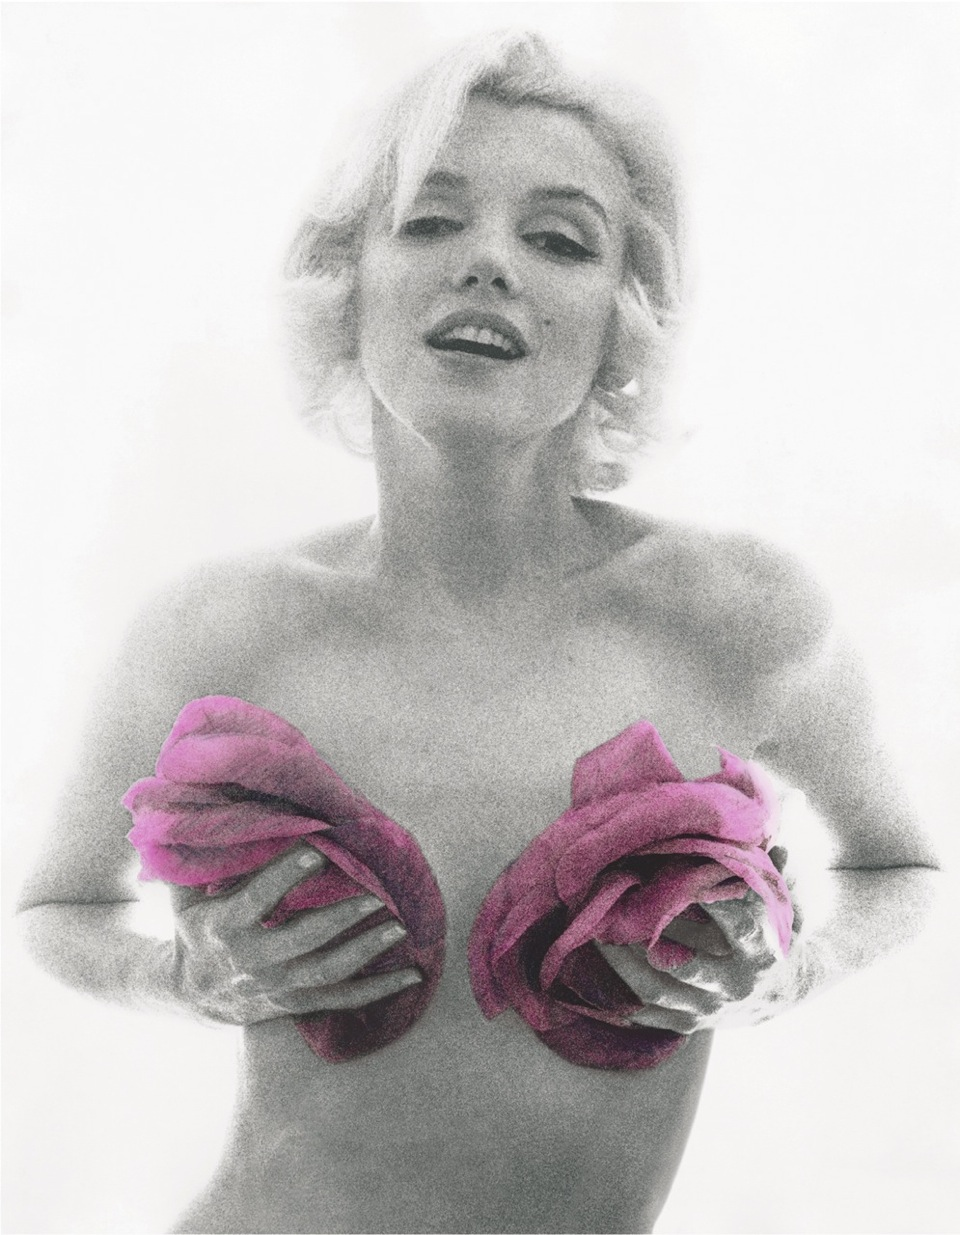 Marilyn Monroe / I wanna be loved by you